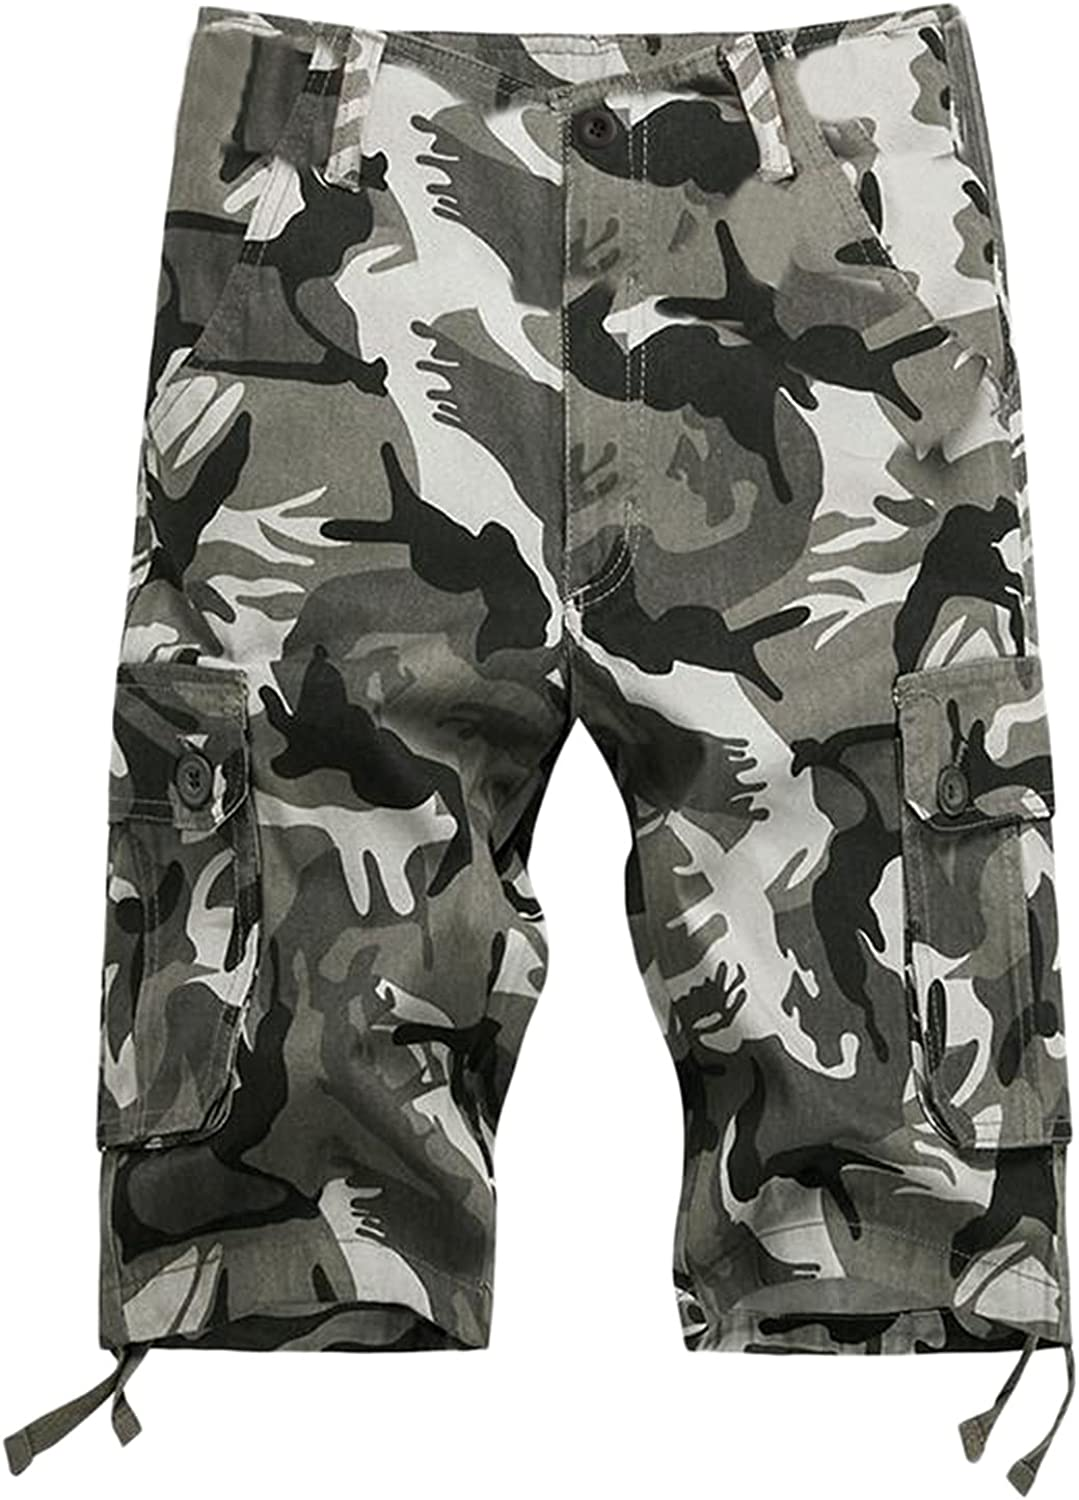 KAILUN Men's Overalls Pants Summer Outdoor Hiking Fishing Solid Color Multi-Pocket Shorts Casual Men's Loose Cotton Shorts